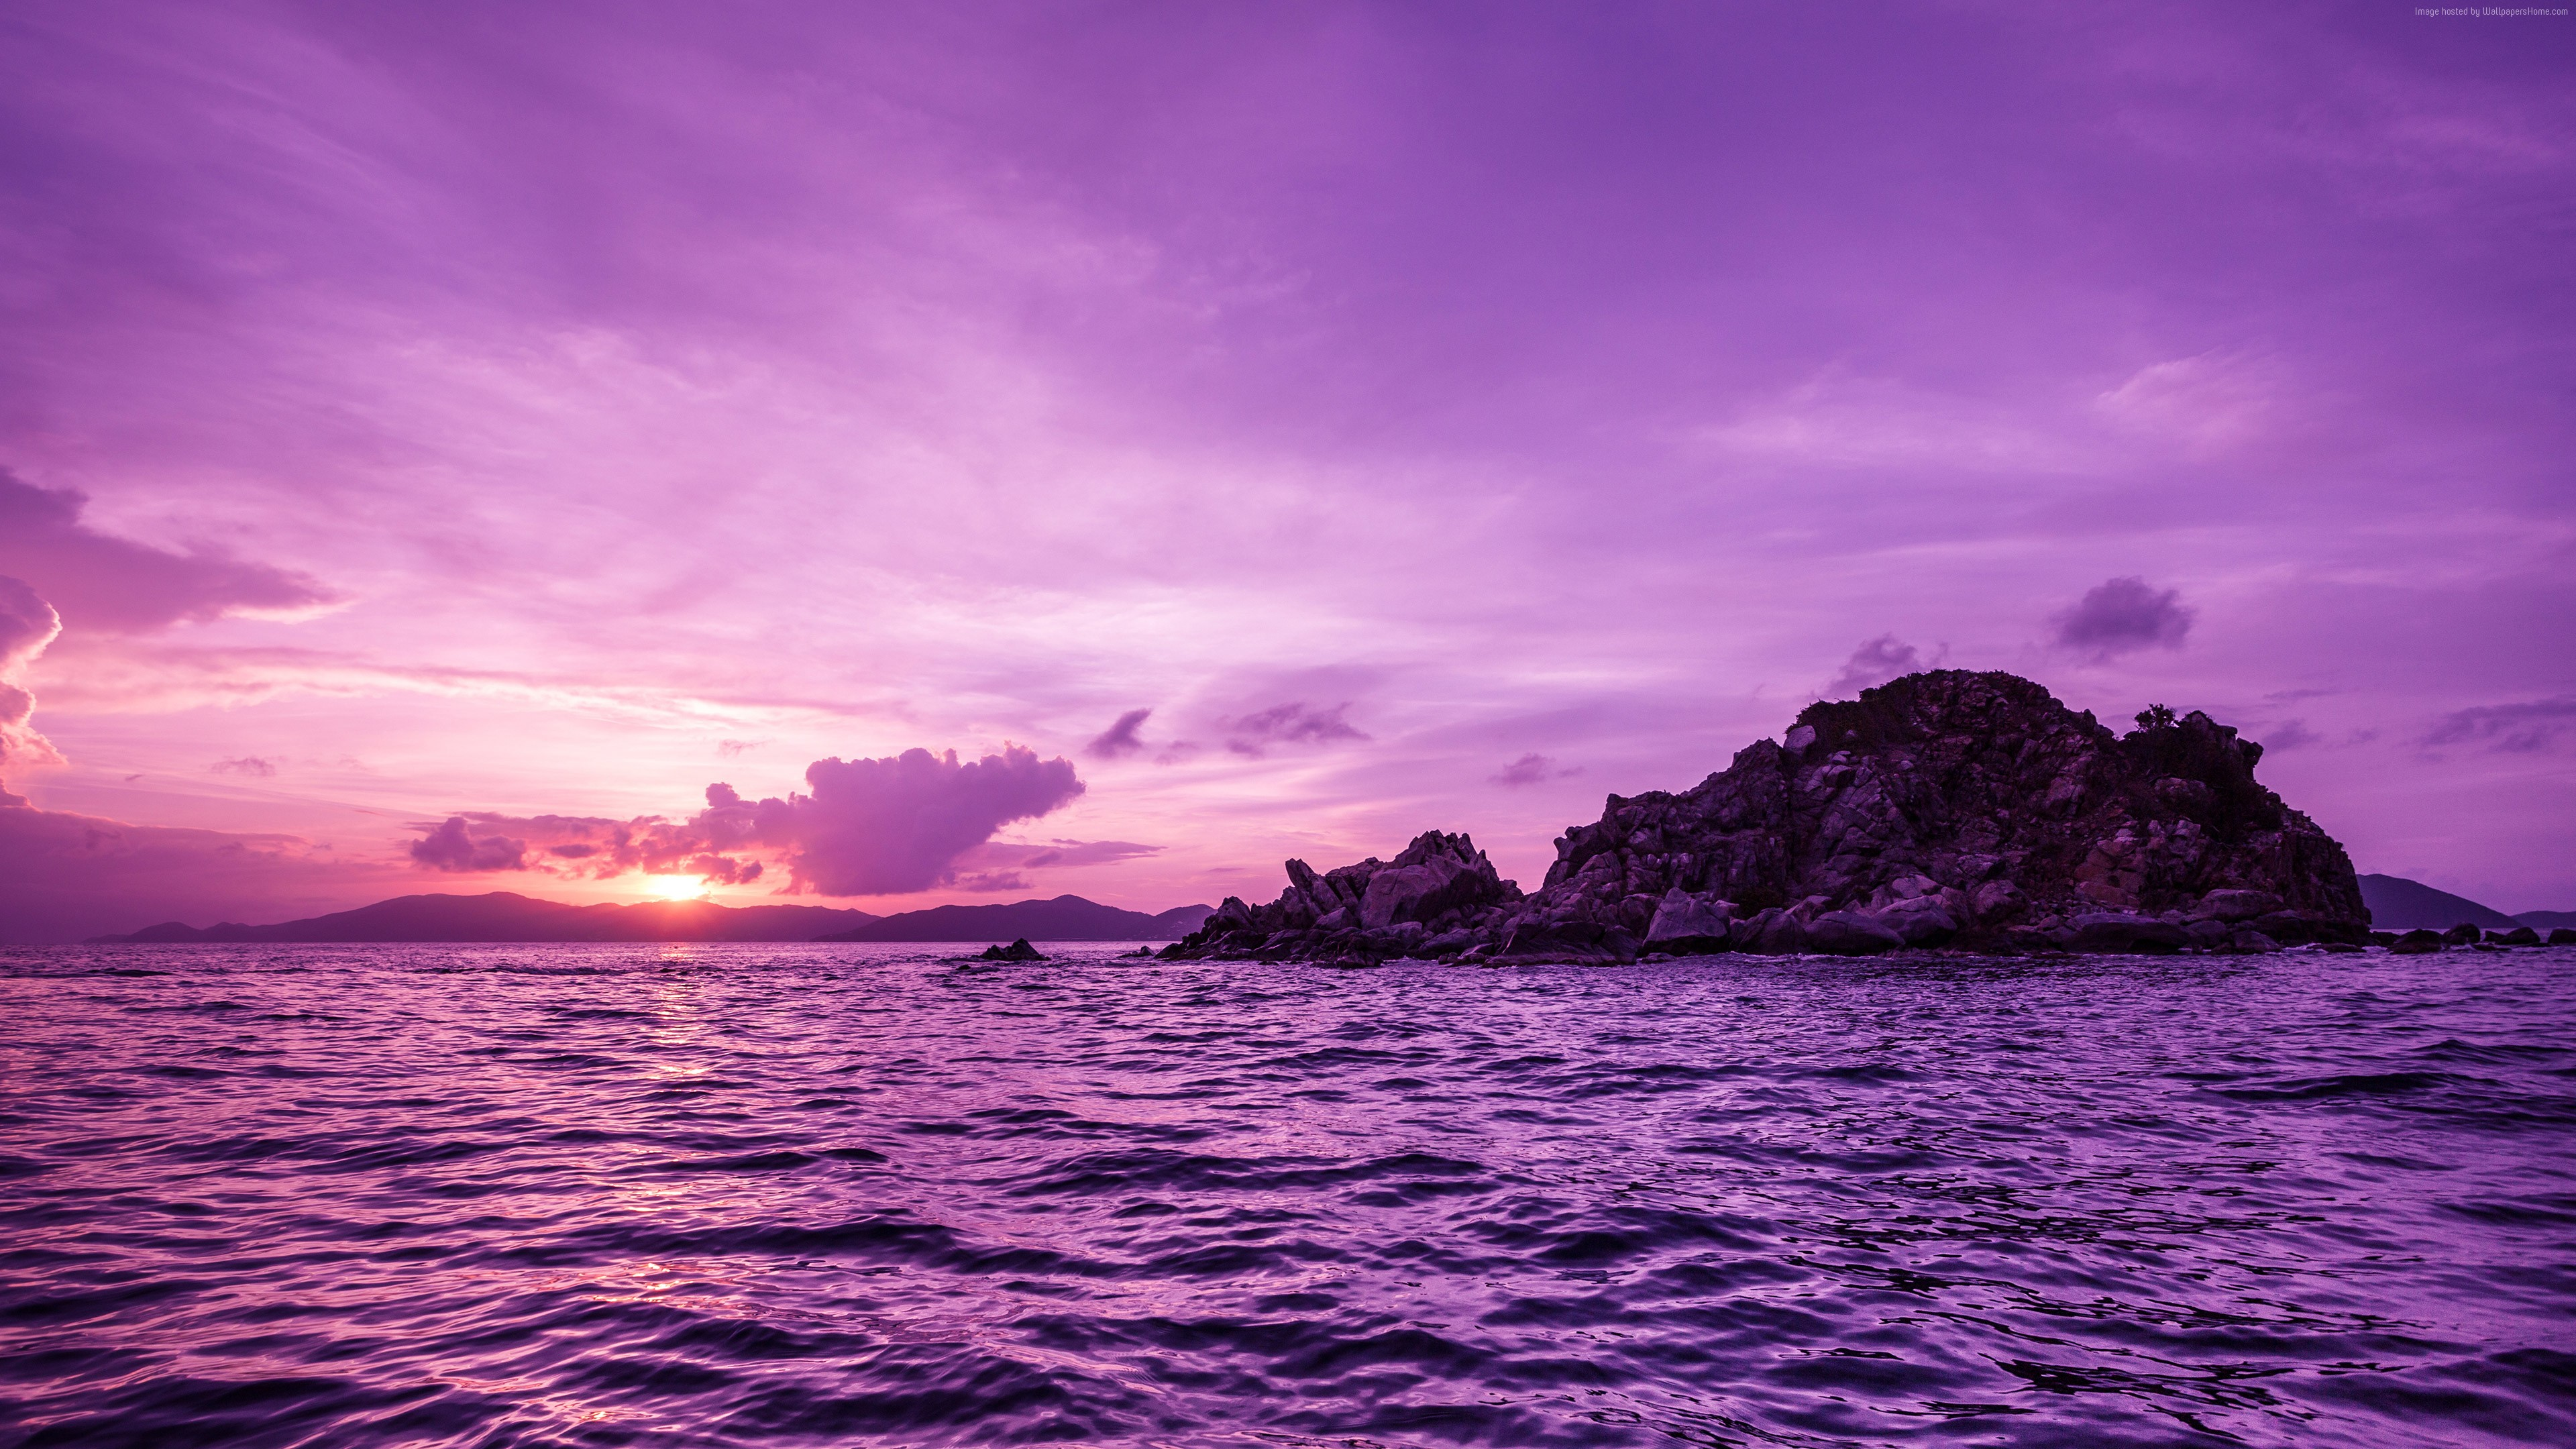 Wallpaper Pelican island, sunset, purple, Travel